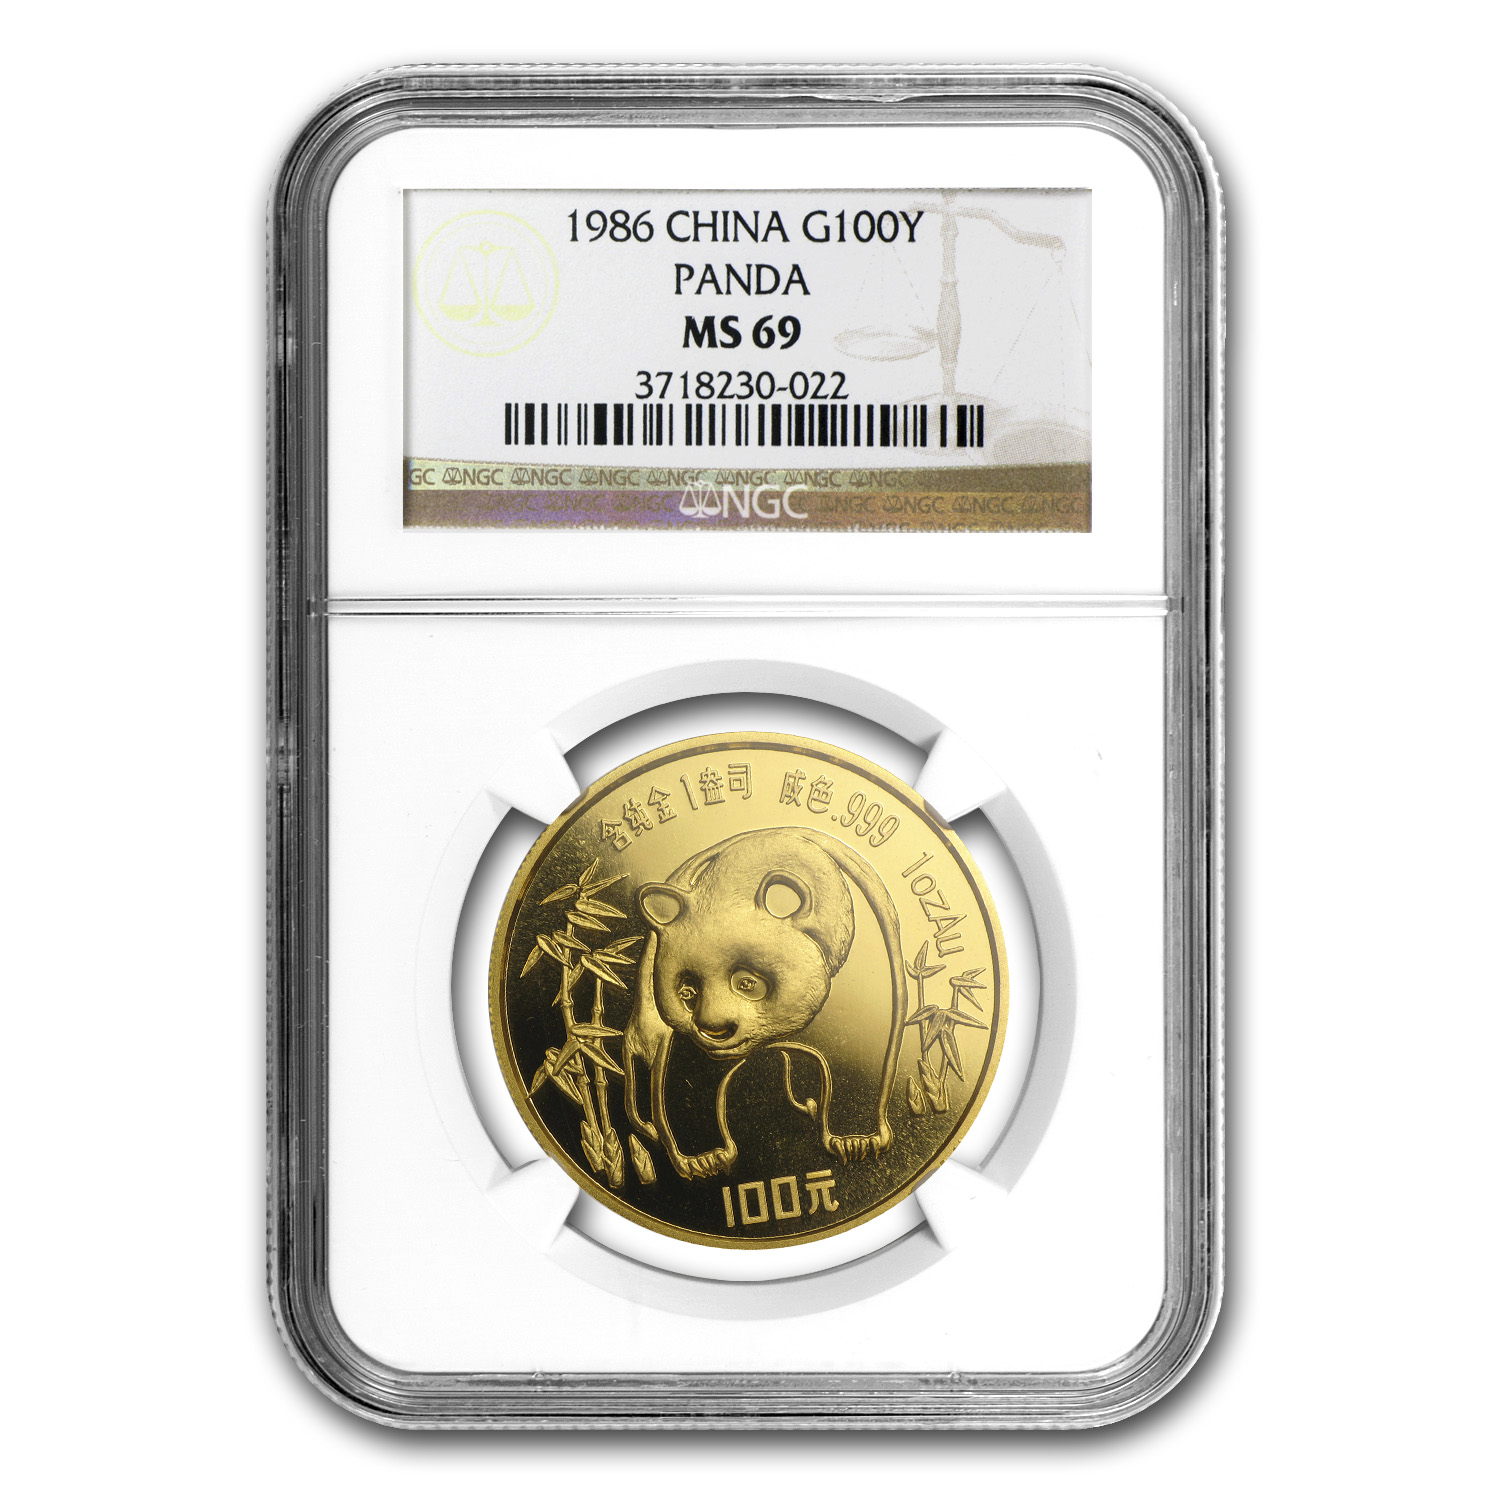 1986 China 1 oz Gold Panda MS-69 NGC